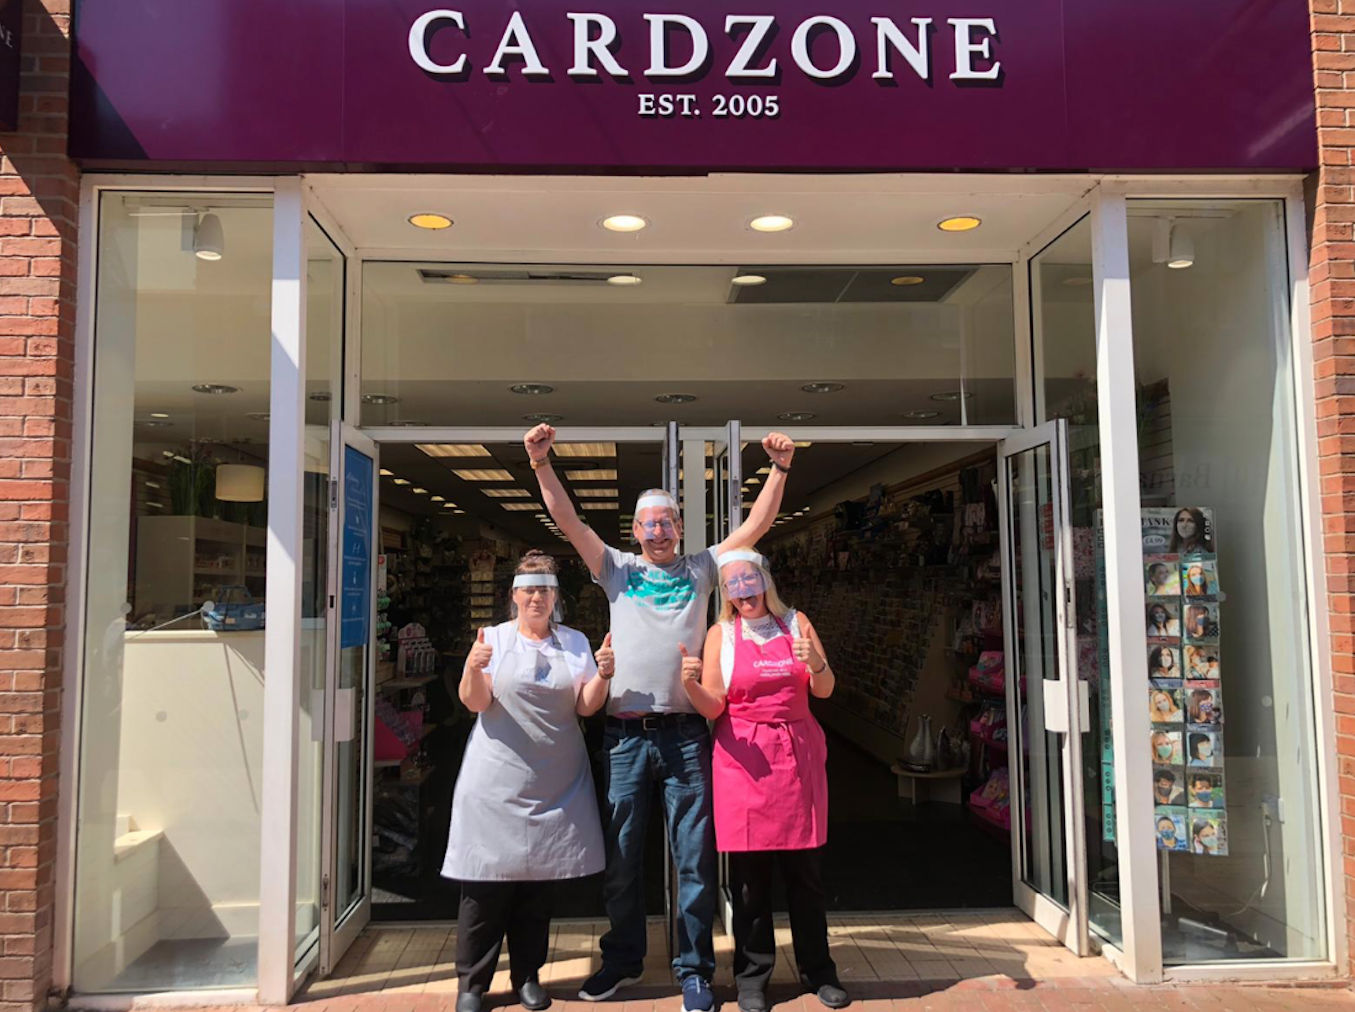 Above: At the opening of the Macclesfield store which features the new branding. (Left-right) Cardzone's Nicola McAlpine, Andy Hicks and Lou Owen.